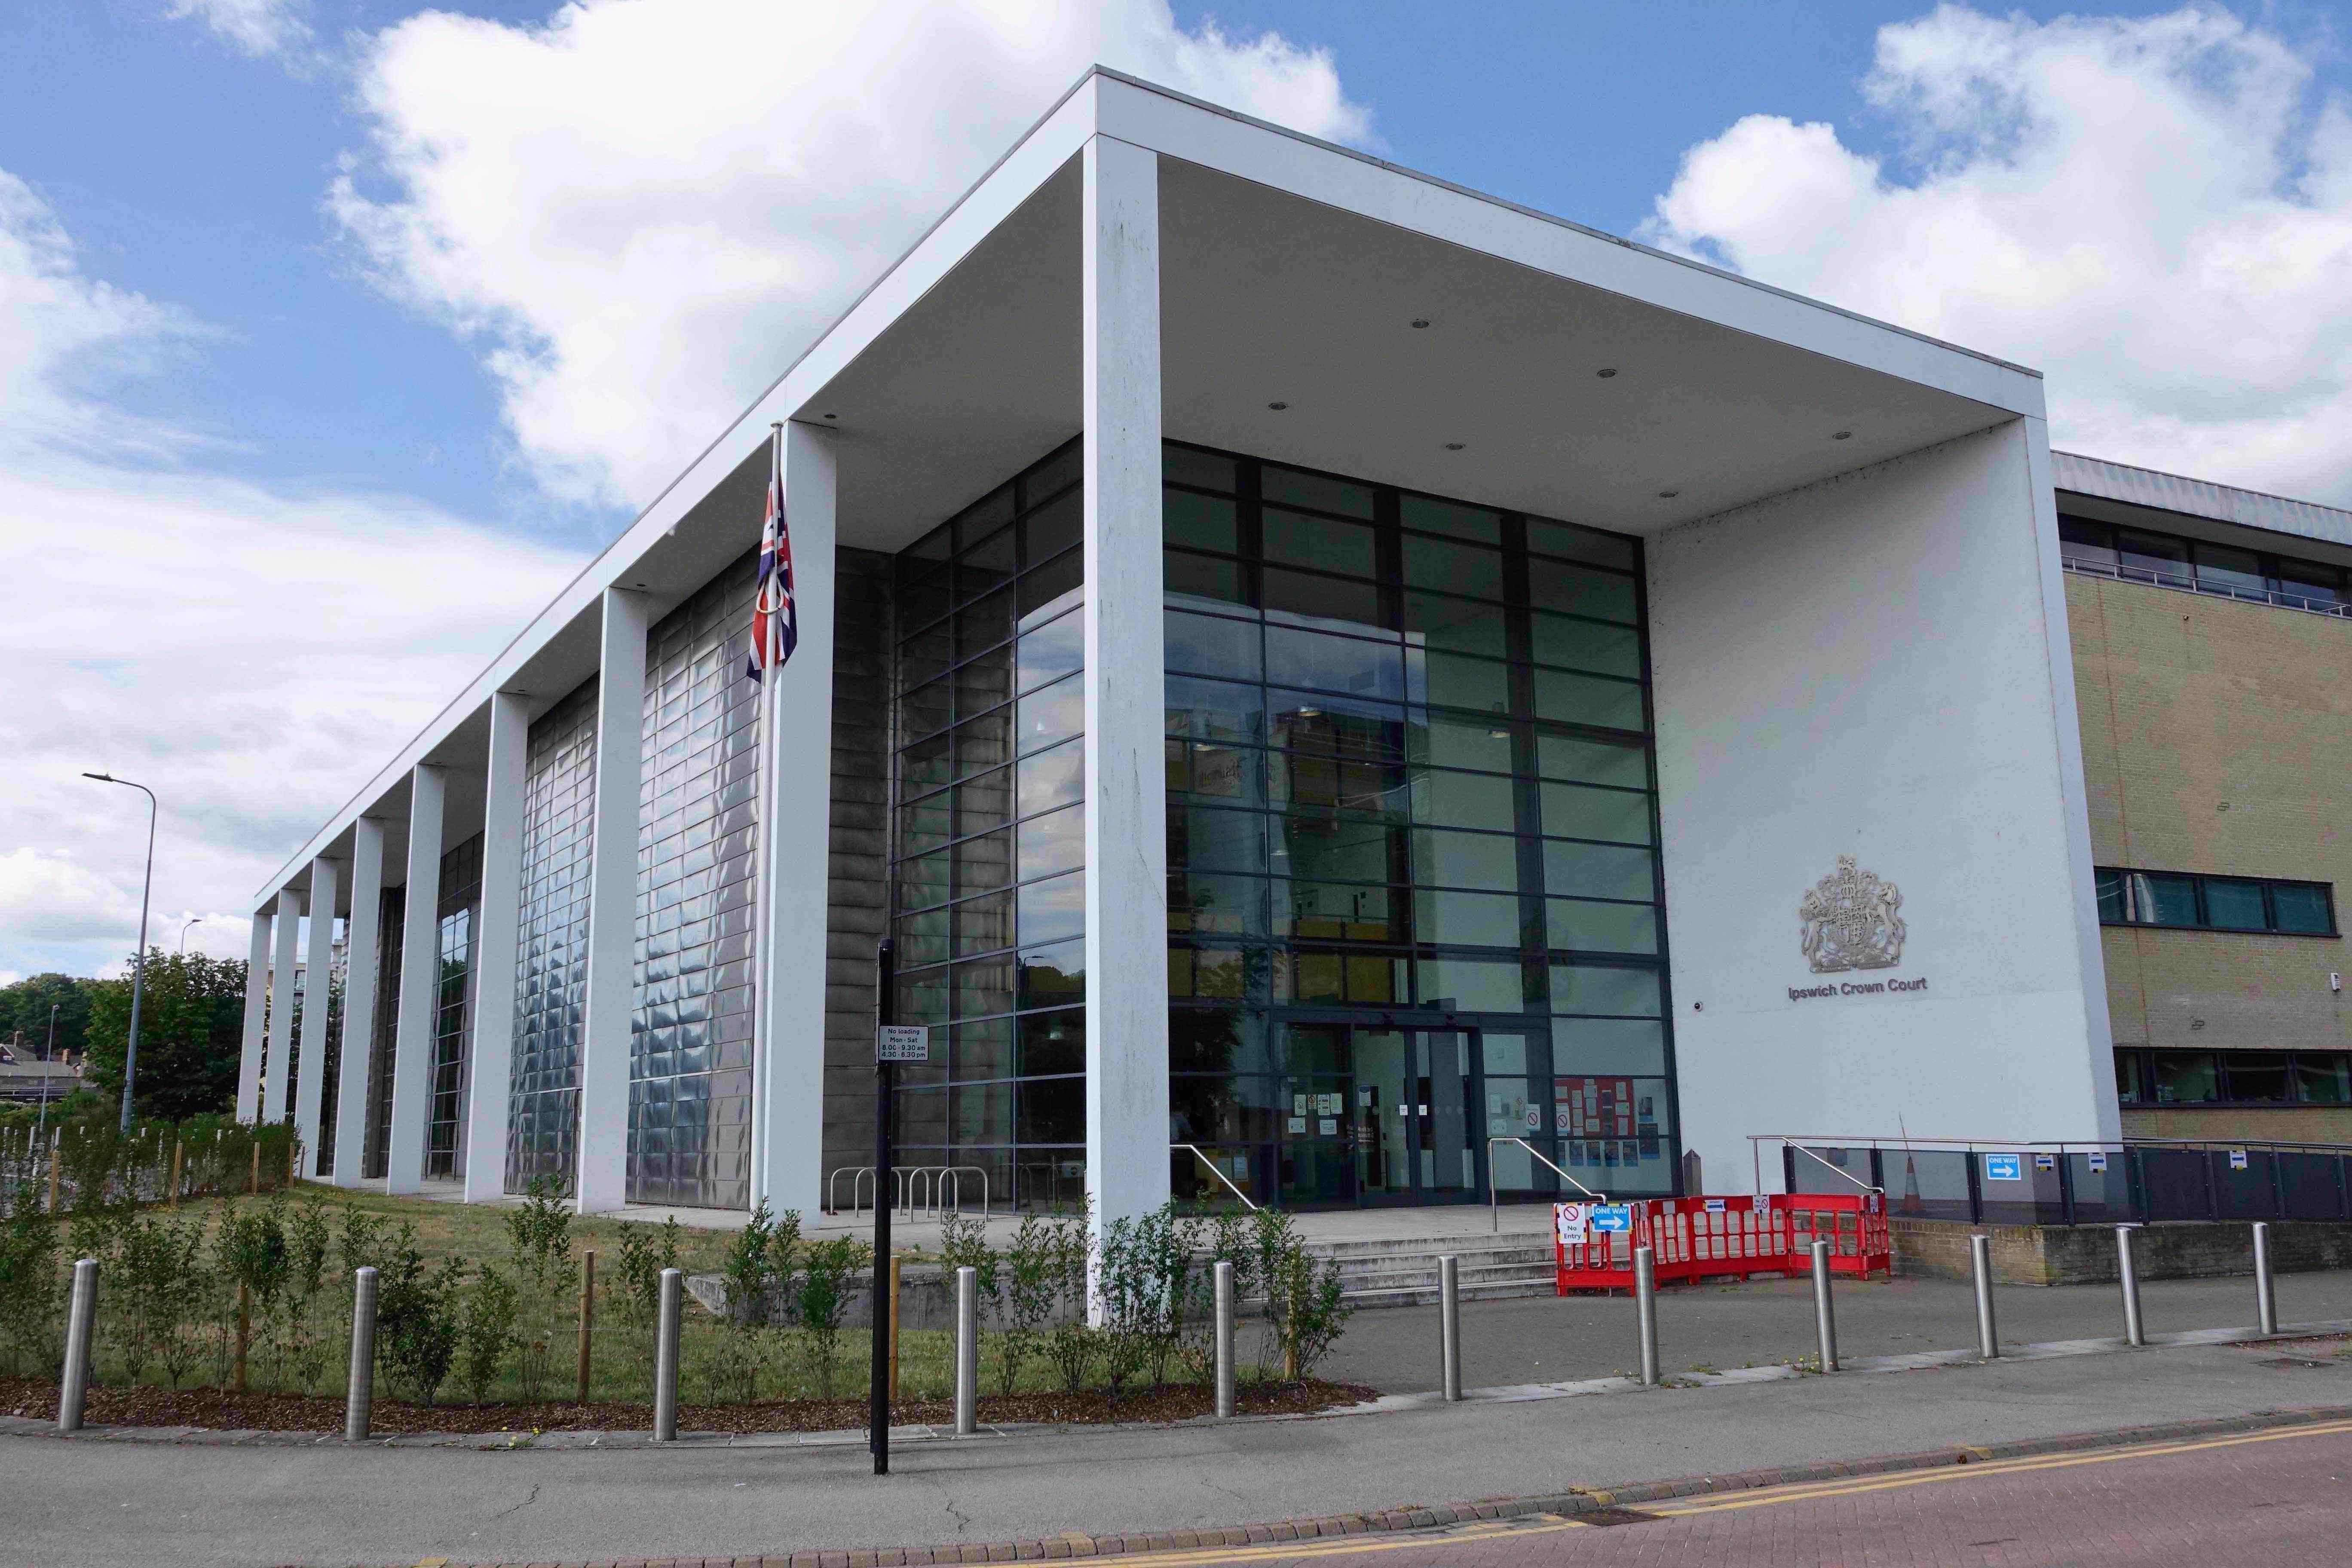 The trial continues at Ipswich Crown Court